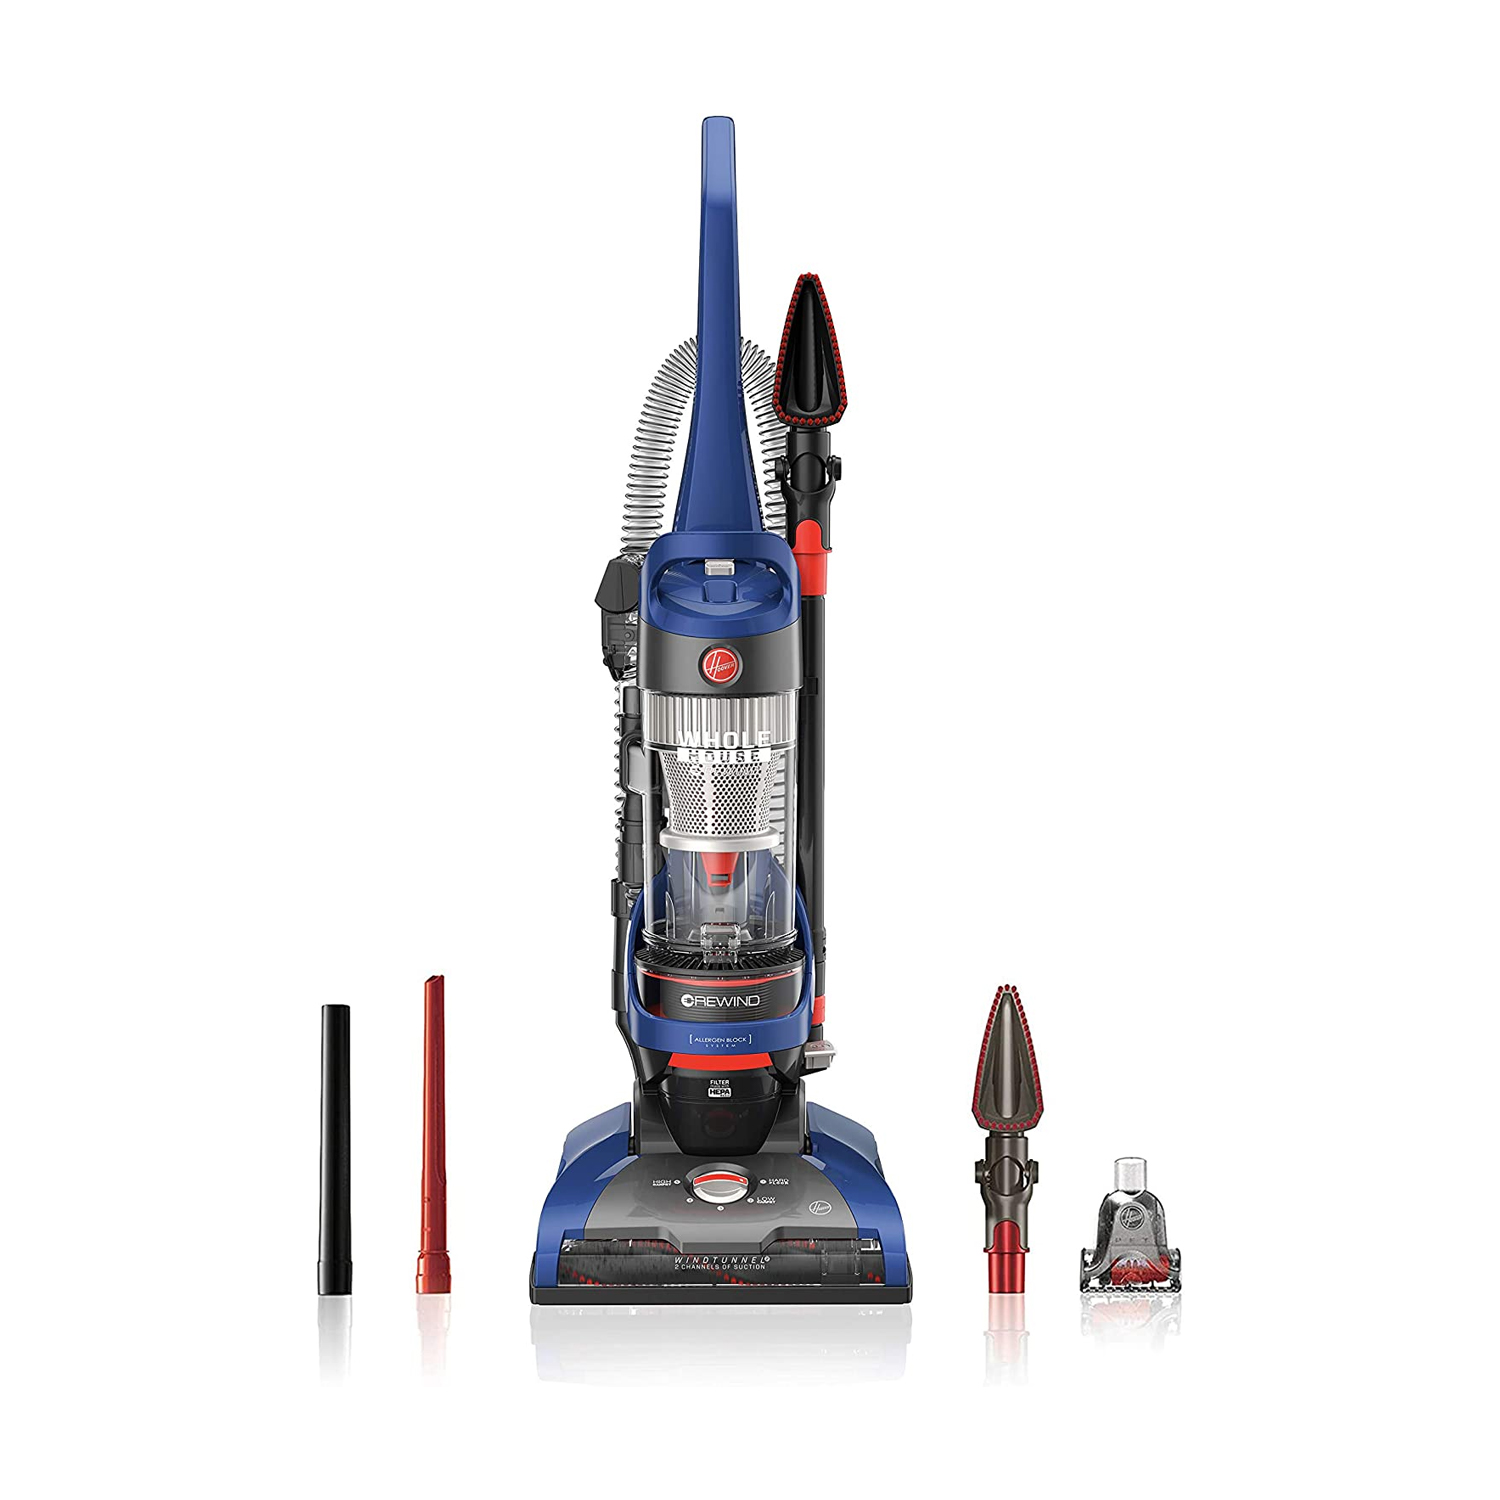 red, gray and blue hoover vacuum cleaner